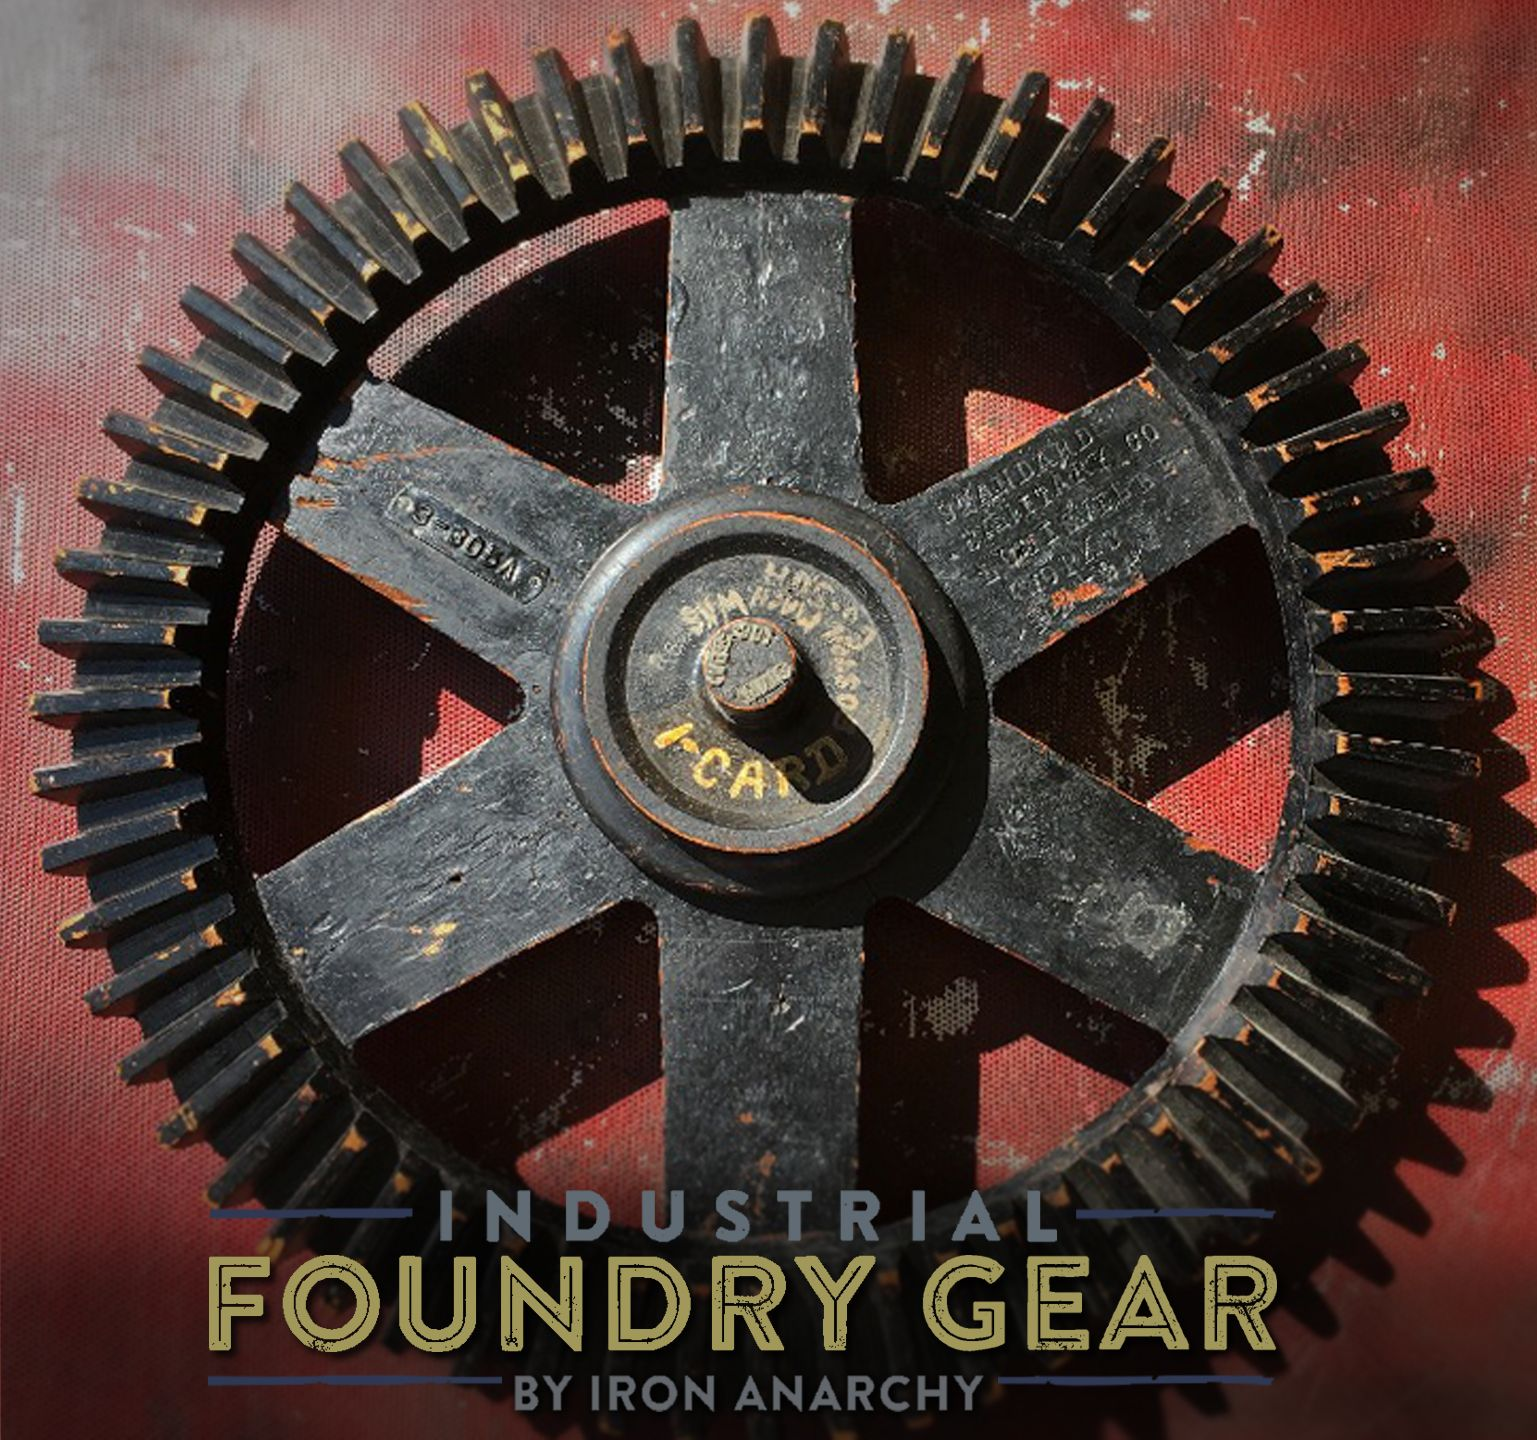 25 Industrial Foundry Gear Pattern Wooden Bevel Gear Model With Stamped Id And Metal Tags From Ironanarchy Com Lightw Chic Wall Art Vintage Industrial Gears